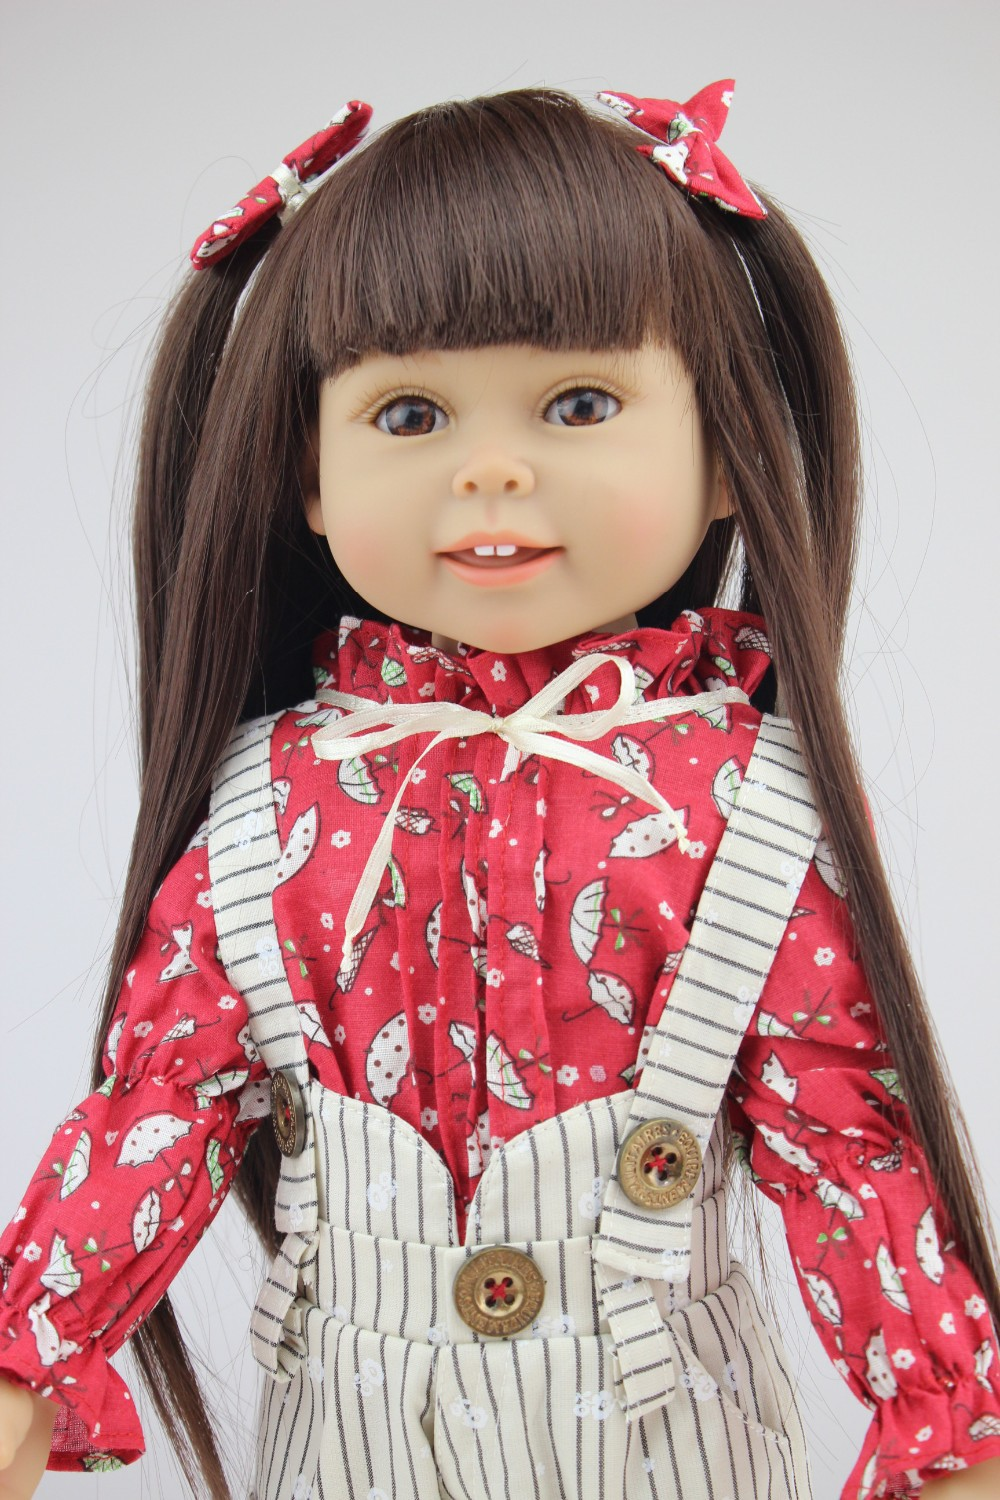 Wholesale 2017 new arrived american 18 inch girl doll handmade realistic cute princess toys with long hair smiling girl dolls new arrived handmade american 18 inch girl doll vinyl princess smiling girls looks so pretty baby doll toys for children